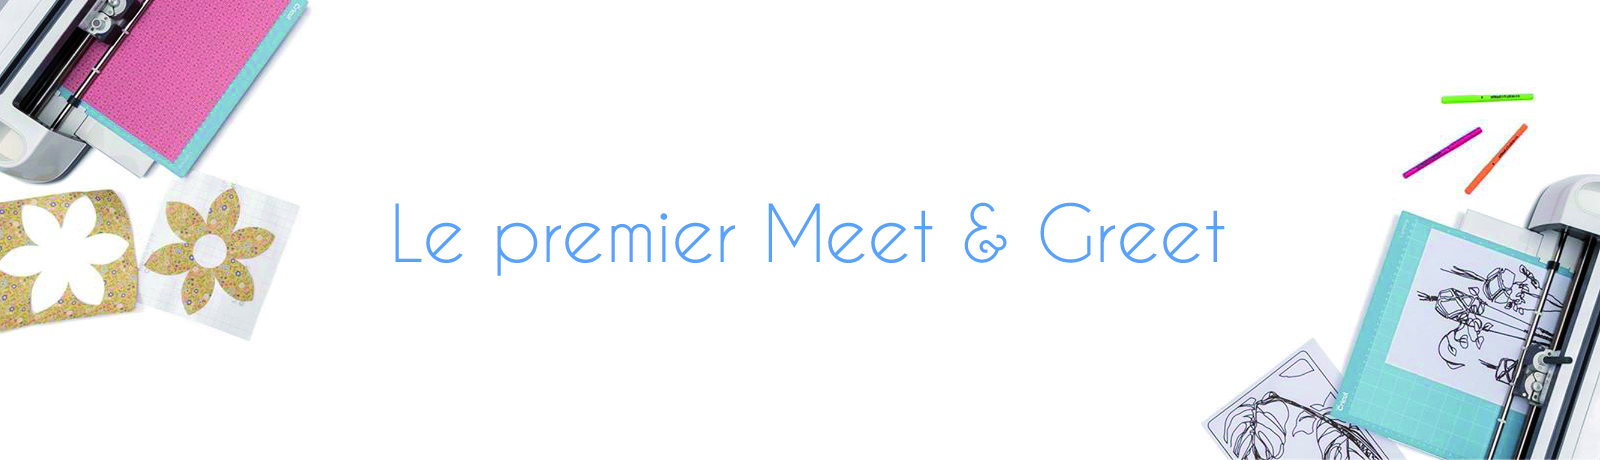 Le premier Meet & Greet Cricut à Paris